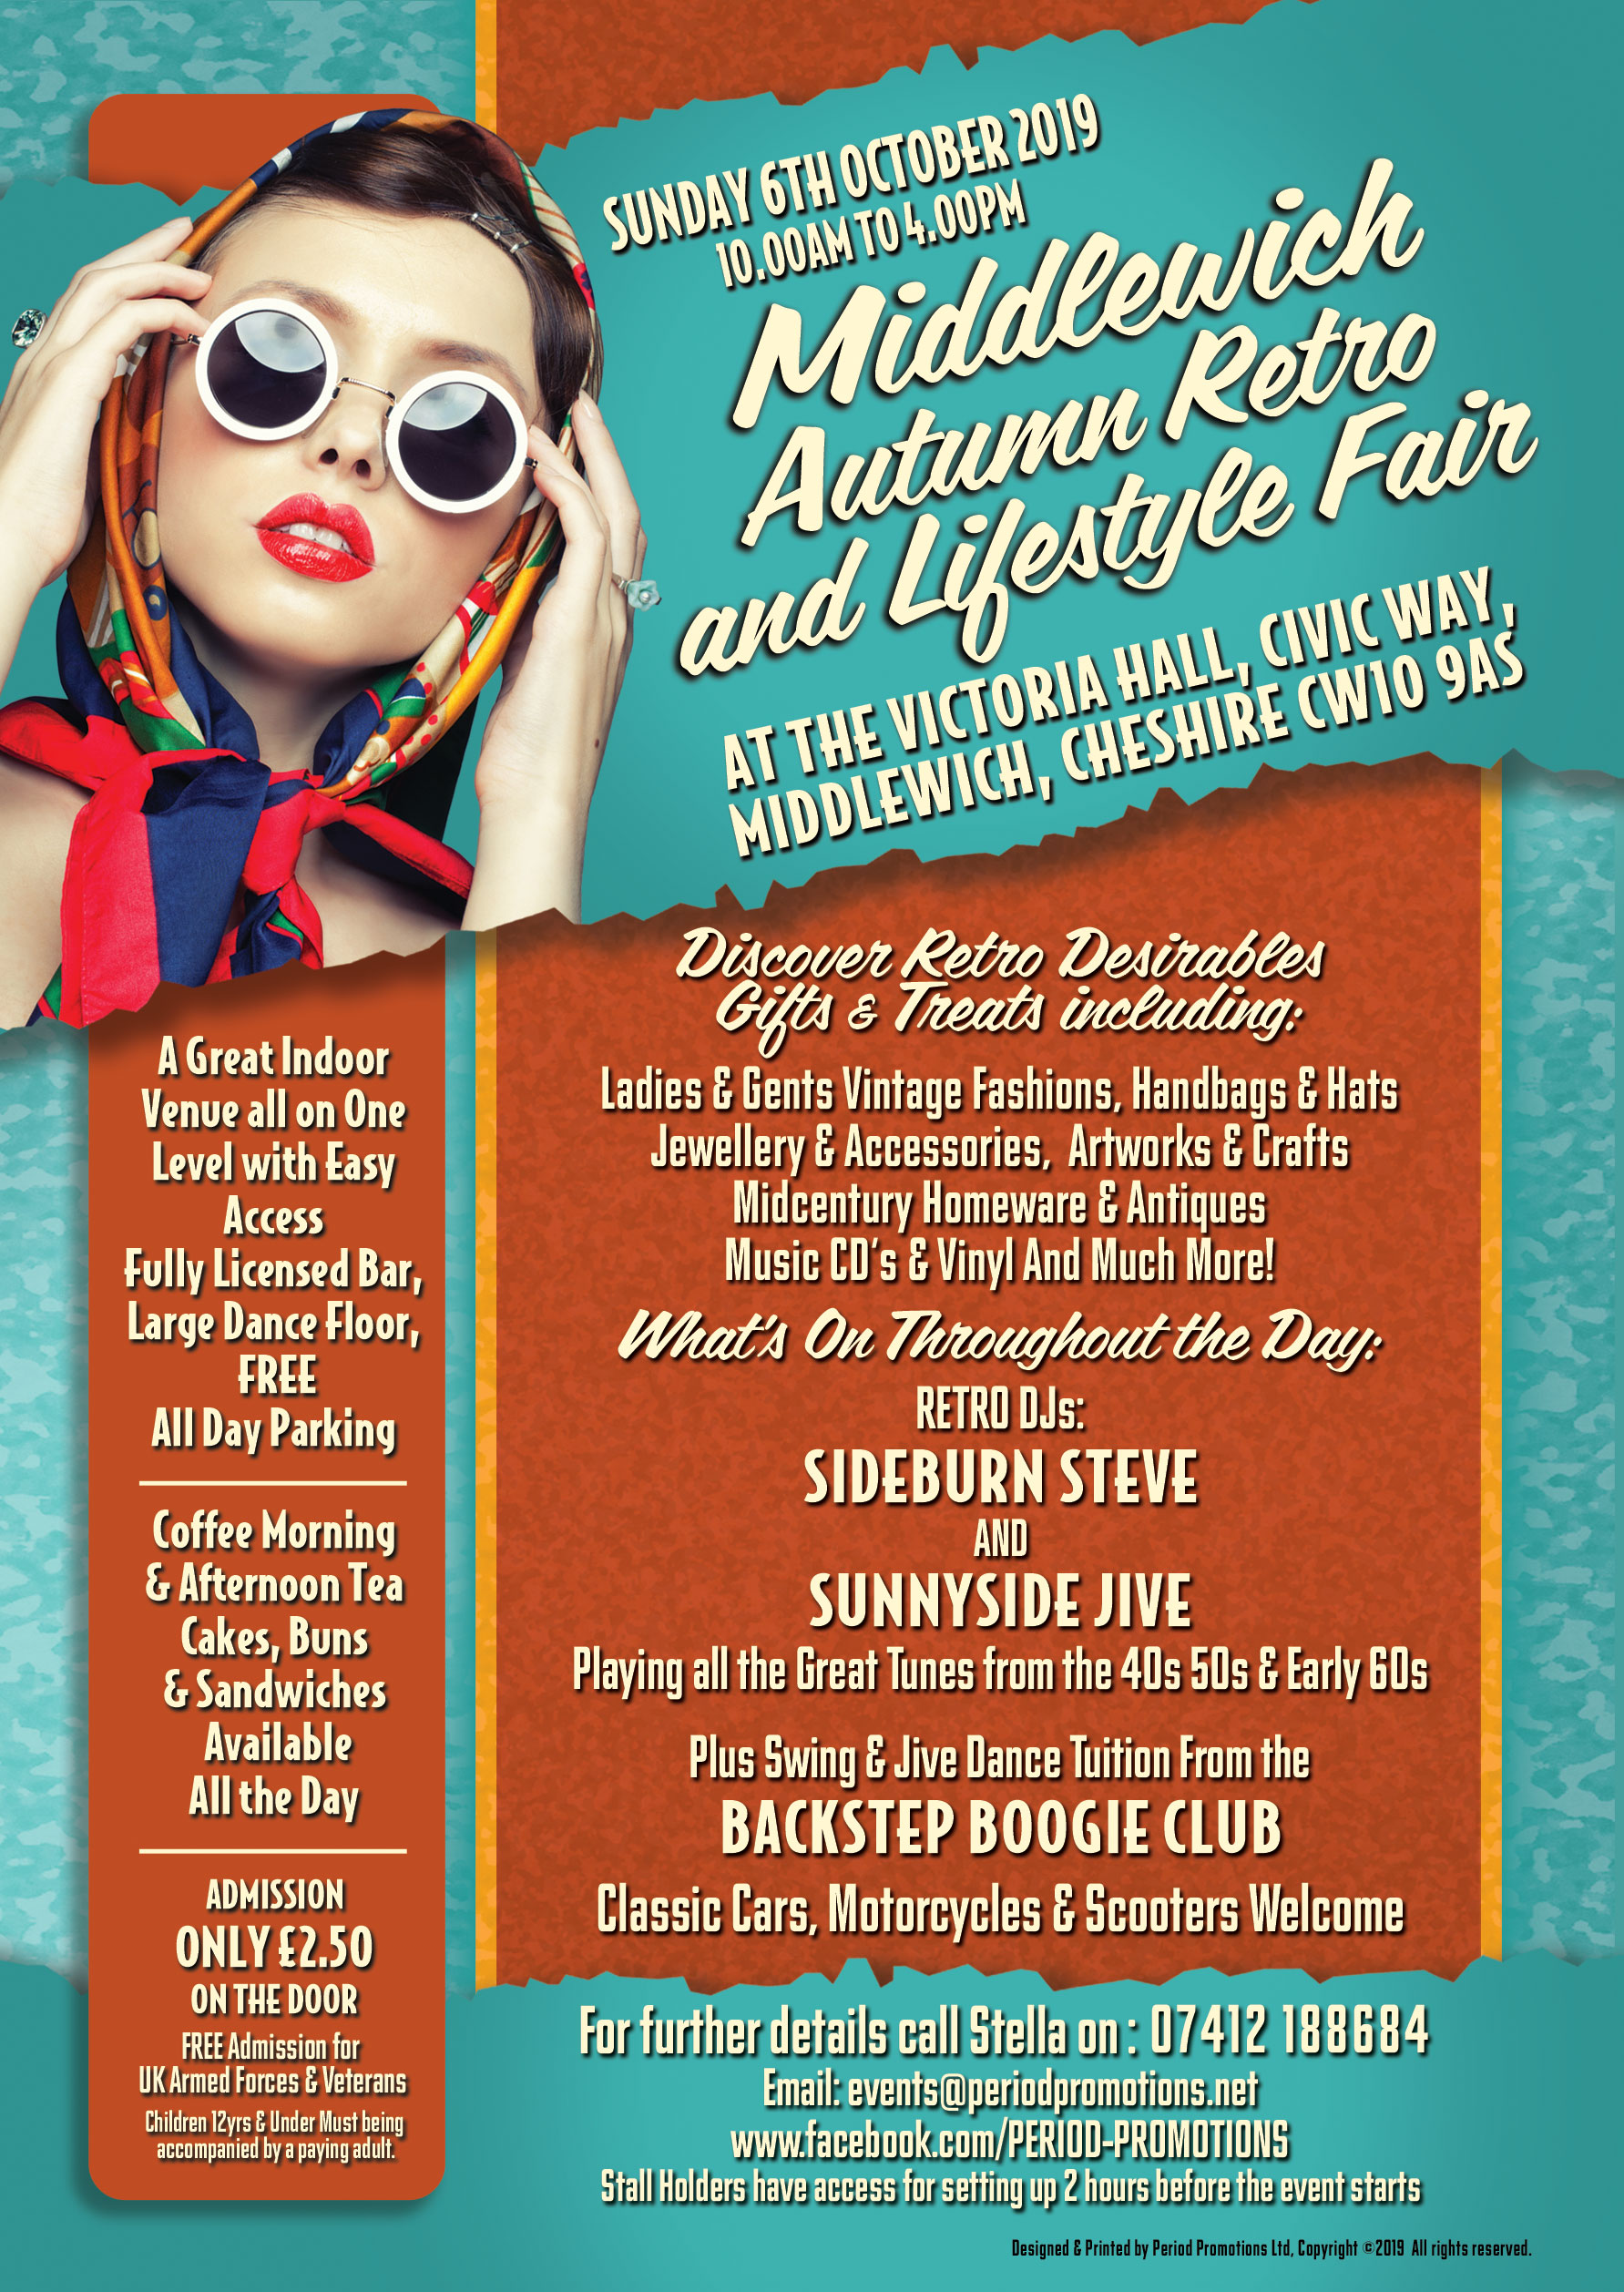 MIDDLEWICH AUTUMN RETRO & LIFESTYLE FAIR